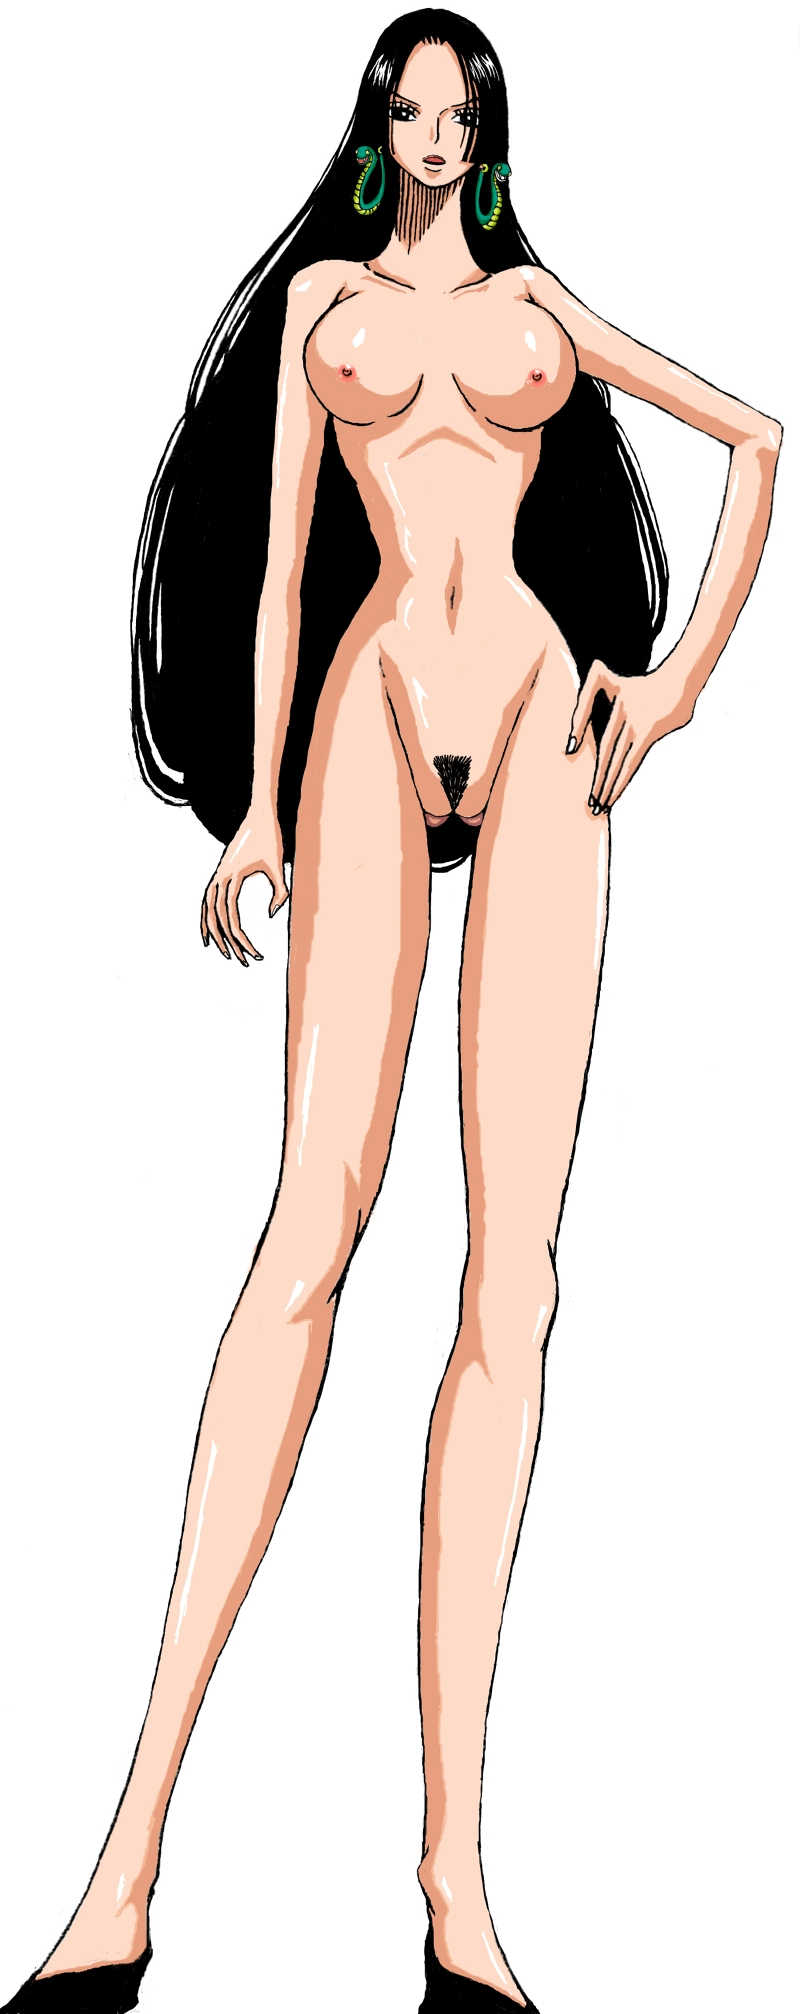 Toon sex pic ##000130400188 boa hancock one piece tagme